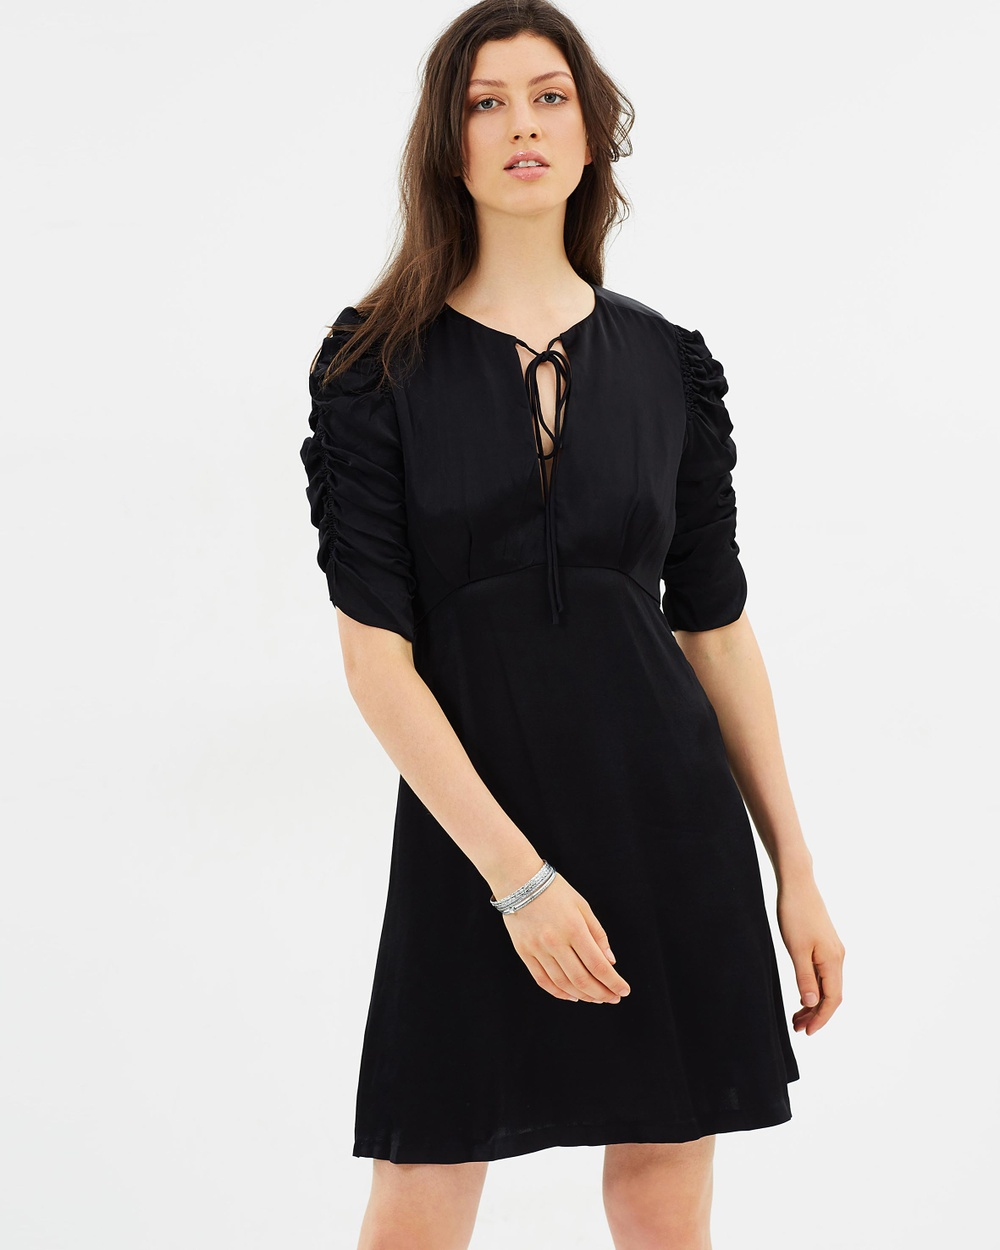 M.N.G Salem Dress Dresses Black Salem Dress